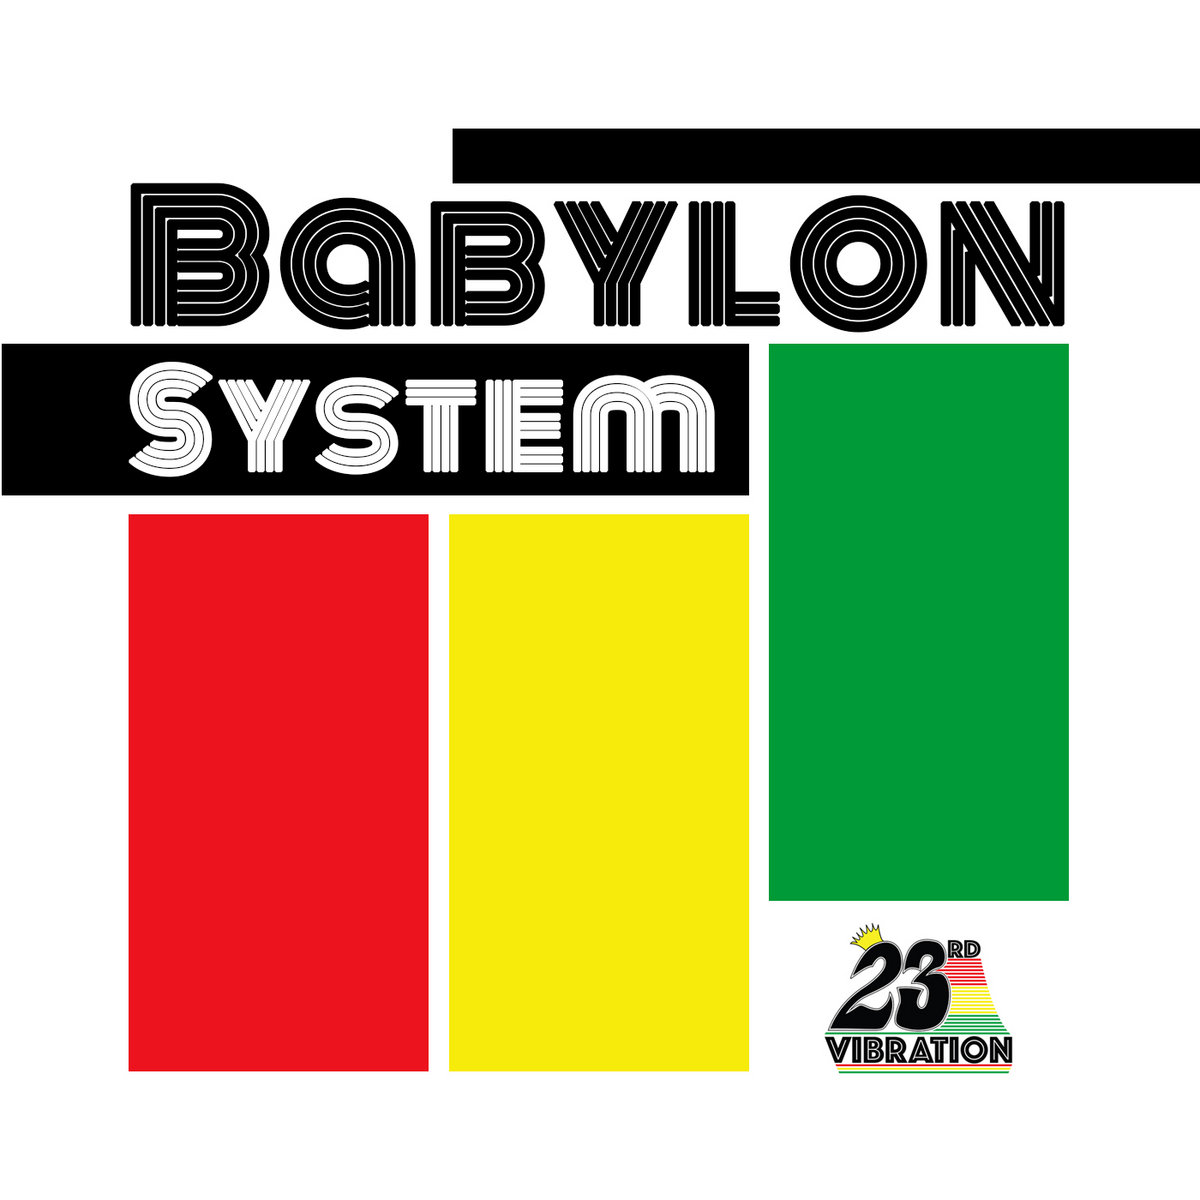 Babylon System by 23rd Vibration